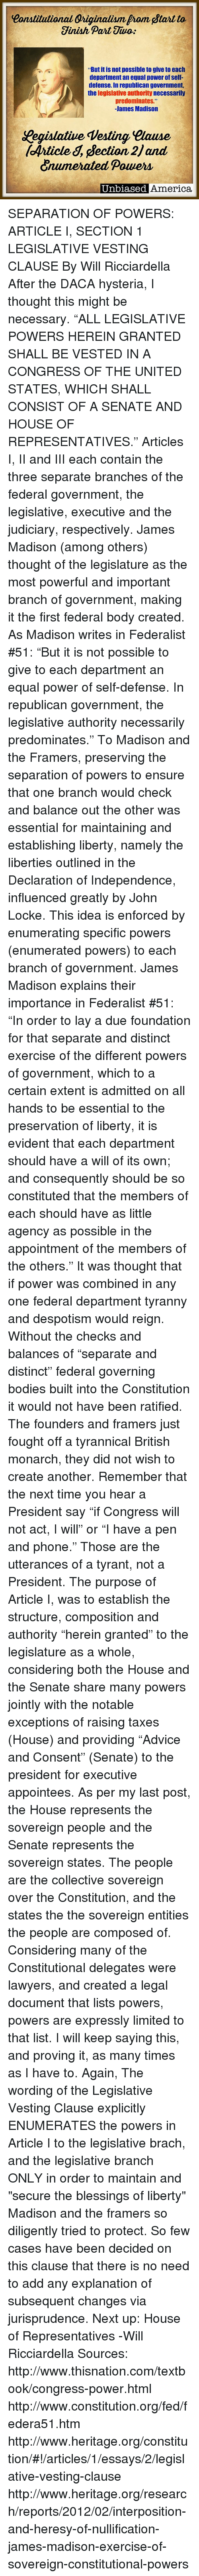 """Equalism: Constitutional Originalism Prom Btart to  Finish Part Tiuo:  But it is not possible to give to each  department an equal power of self-  defense. In republican government,  the legislative authority necessarily  predominates.""""  James Madison  Cegislatiue Vesting Ulause  foArticle S, iection 2Jand  numerated. Power  Uni。iaeed America SEPARATION OF POWERS: ARTICLE I, SECTION 1 LEGISLATIVE VESTING CLAUSE By Will Ricciardella  After the DACA hysteria, I thought this might be necessary.  """"ALL LEGISLATIVE POWERS HEREIN GRANTED SHALL BE VESTED IN A CONGRESS OF THE UNITED STATES, WHICH SHALL CONSIST OF A SENATE AND HOUSE OF REPRESENTATIVES.""""  Articles I, II and III each contain the three separate branches of the federal government, the legislative, executive and the judiciary, respectively.   James Madison (among others) thought of the legislature as the most powerful and important branch of government, making it the first federal body created. As Madison writes in Federalist #51:  """"But it is not possible to give to each department an equal power of self-defense. In republican government, the legislative authority necessarily predominates.""""  To Madison and the Framers, preserving the separation of powers to ensure that one branch would check and balance out the other was essential for maintaining and establishing liberty, namely the liberties outlined in the Declaration of Independence, influenced greatly by John Locke.   This idea is enforced by enumerating specific powers (enumerated powers) to each branch of government. James Madison explains their importance in Federalist #51:  """"In order to lay a due foundation for that separate and distinct exercise of the different powers of government, which to a certain extent is admitted on all hands to be essential to the preservation of liberty, it is evident that each department should have a will of its own; and consequently should be so constituted that the members of each should have as little agency as possible in """